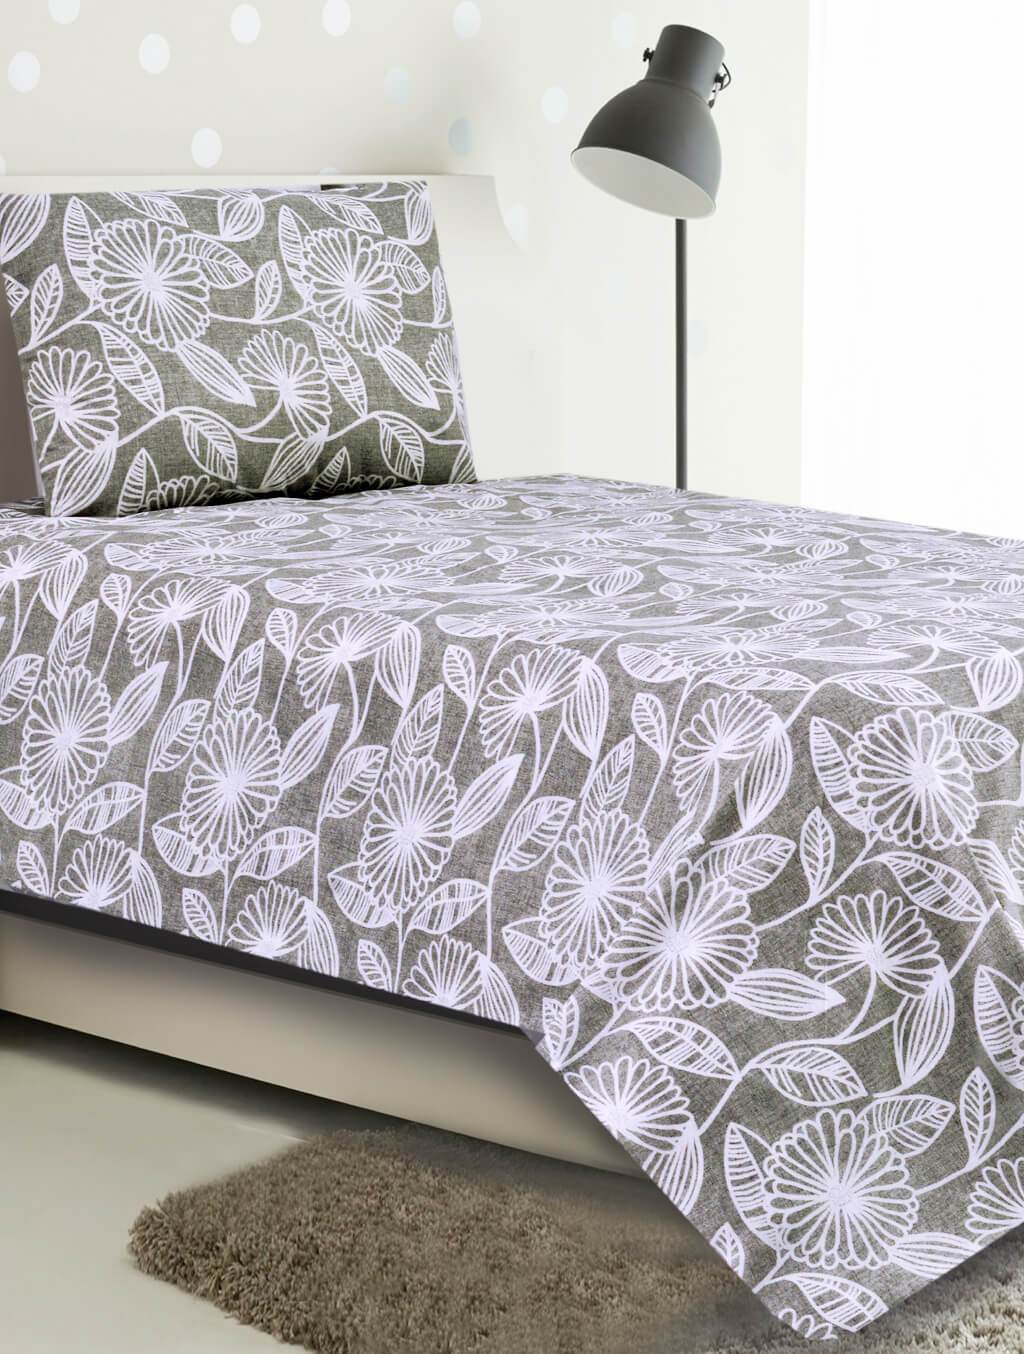 BED SHEET R2G 16220 SINGLE Printed Range 144 TC HOMBEDROO